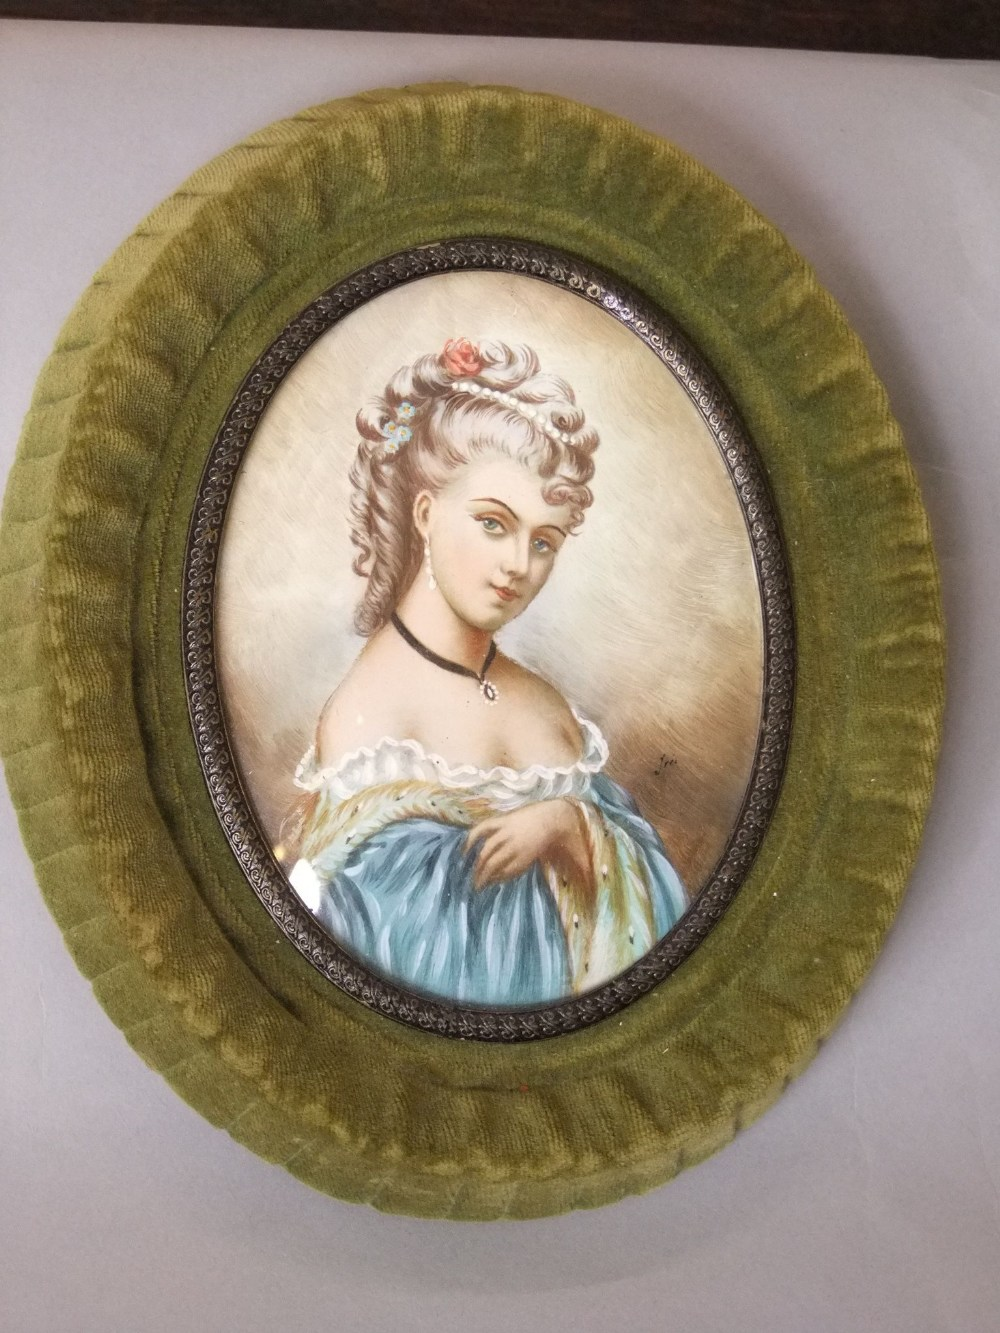 Lot 566 - An oval miniature portrait showing a lady in late 18th century style costume, indistinctly signed,